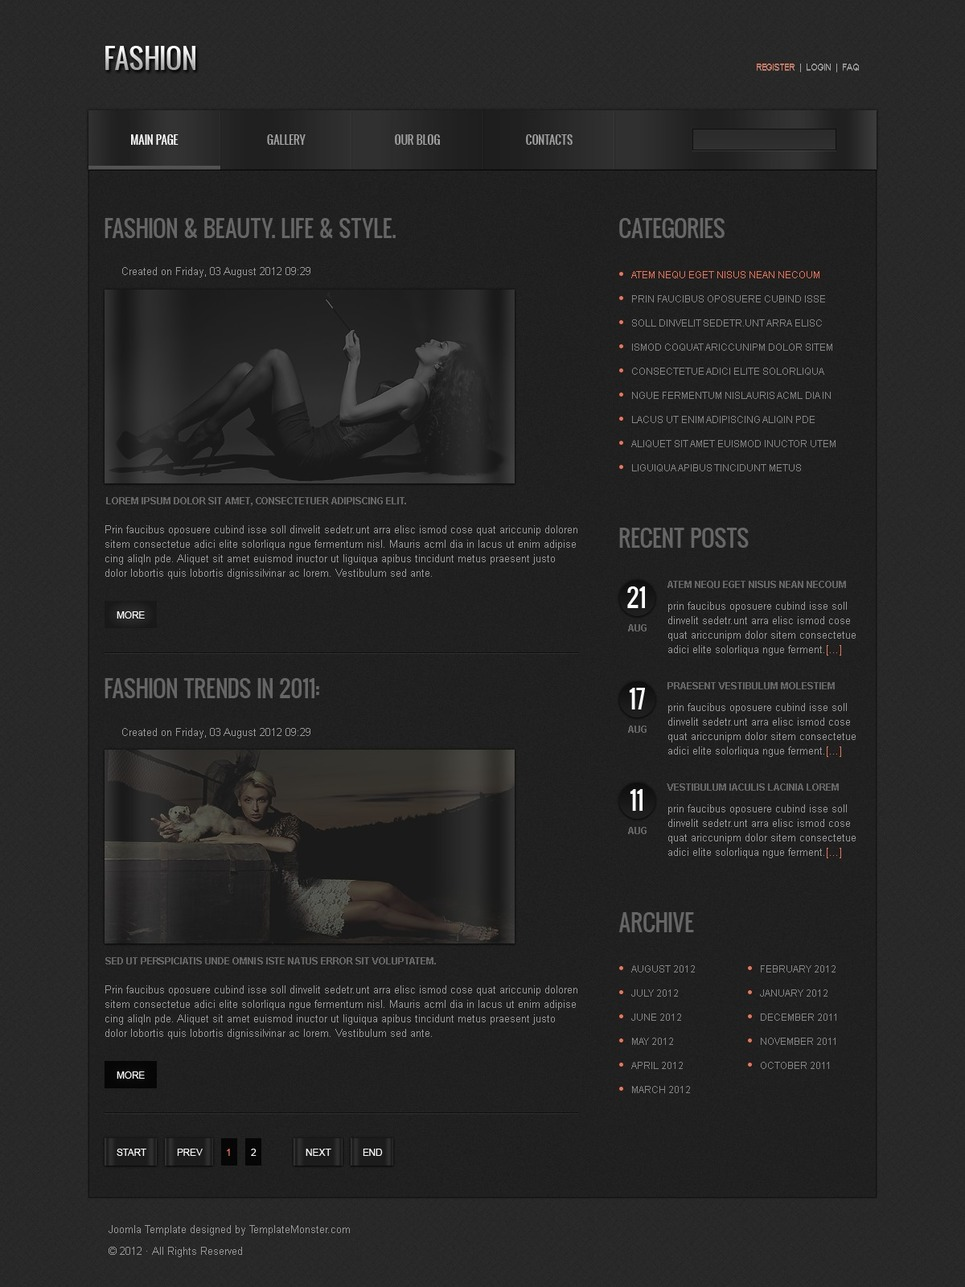 Free Joomla Fashion Template Joomla Template New Screenshots BIG